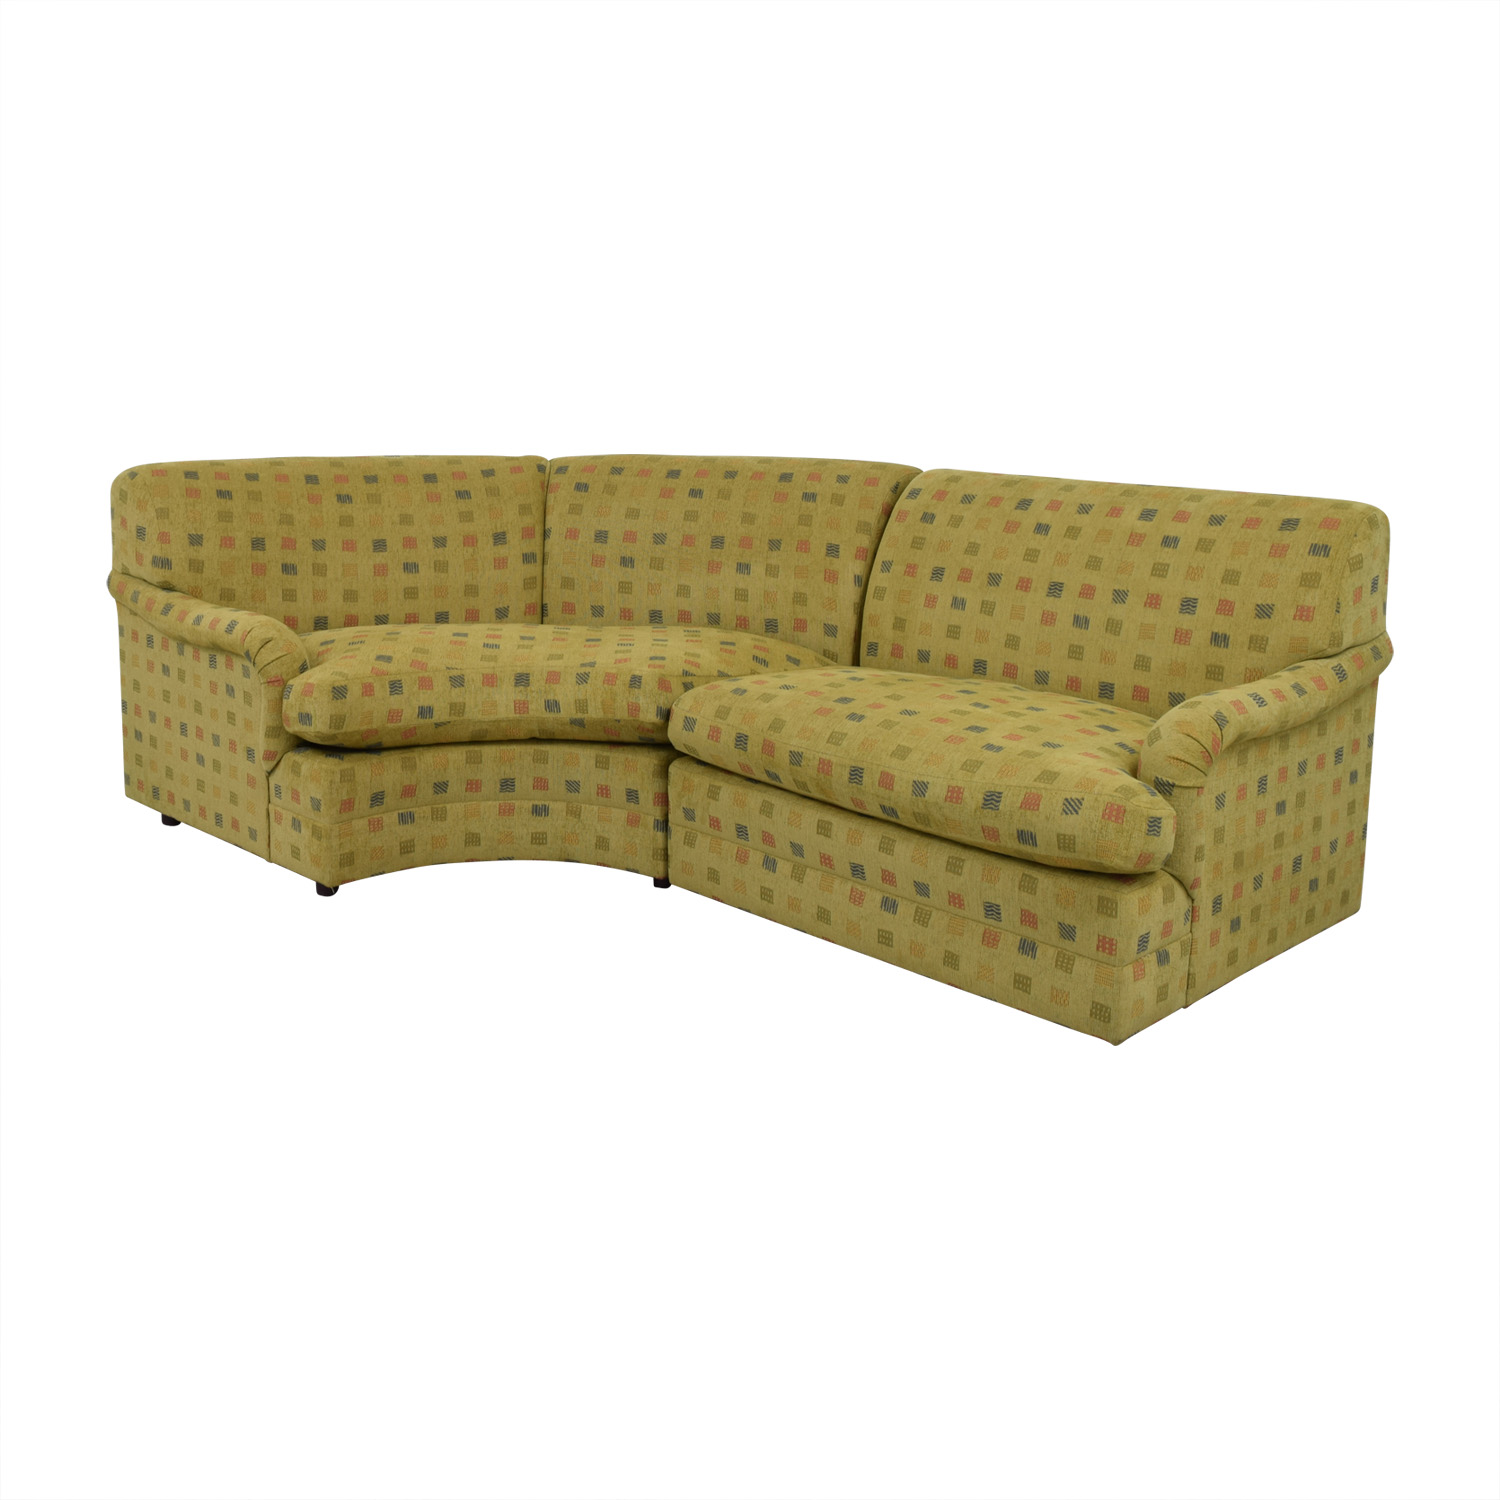 Mason Art Mason Art Mustard Custom Curved Sofa for sale